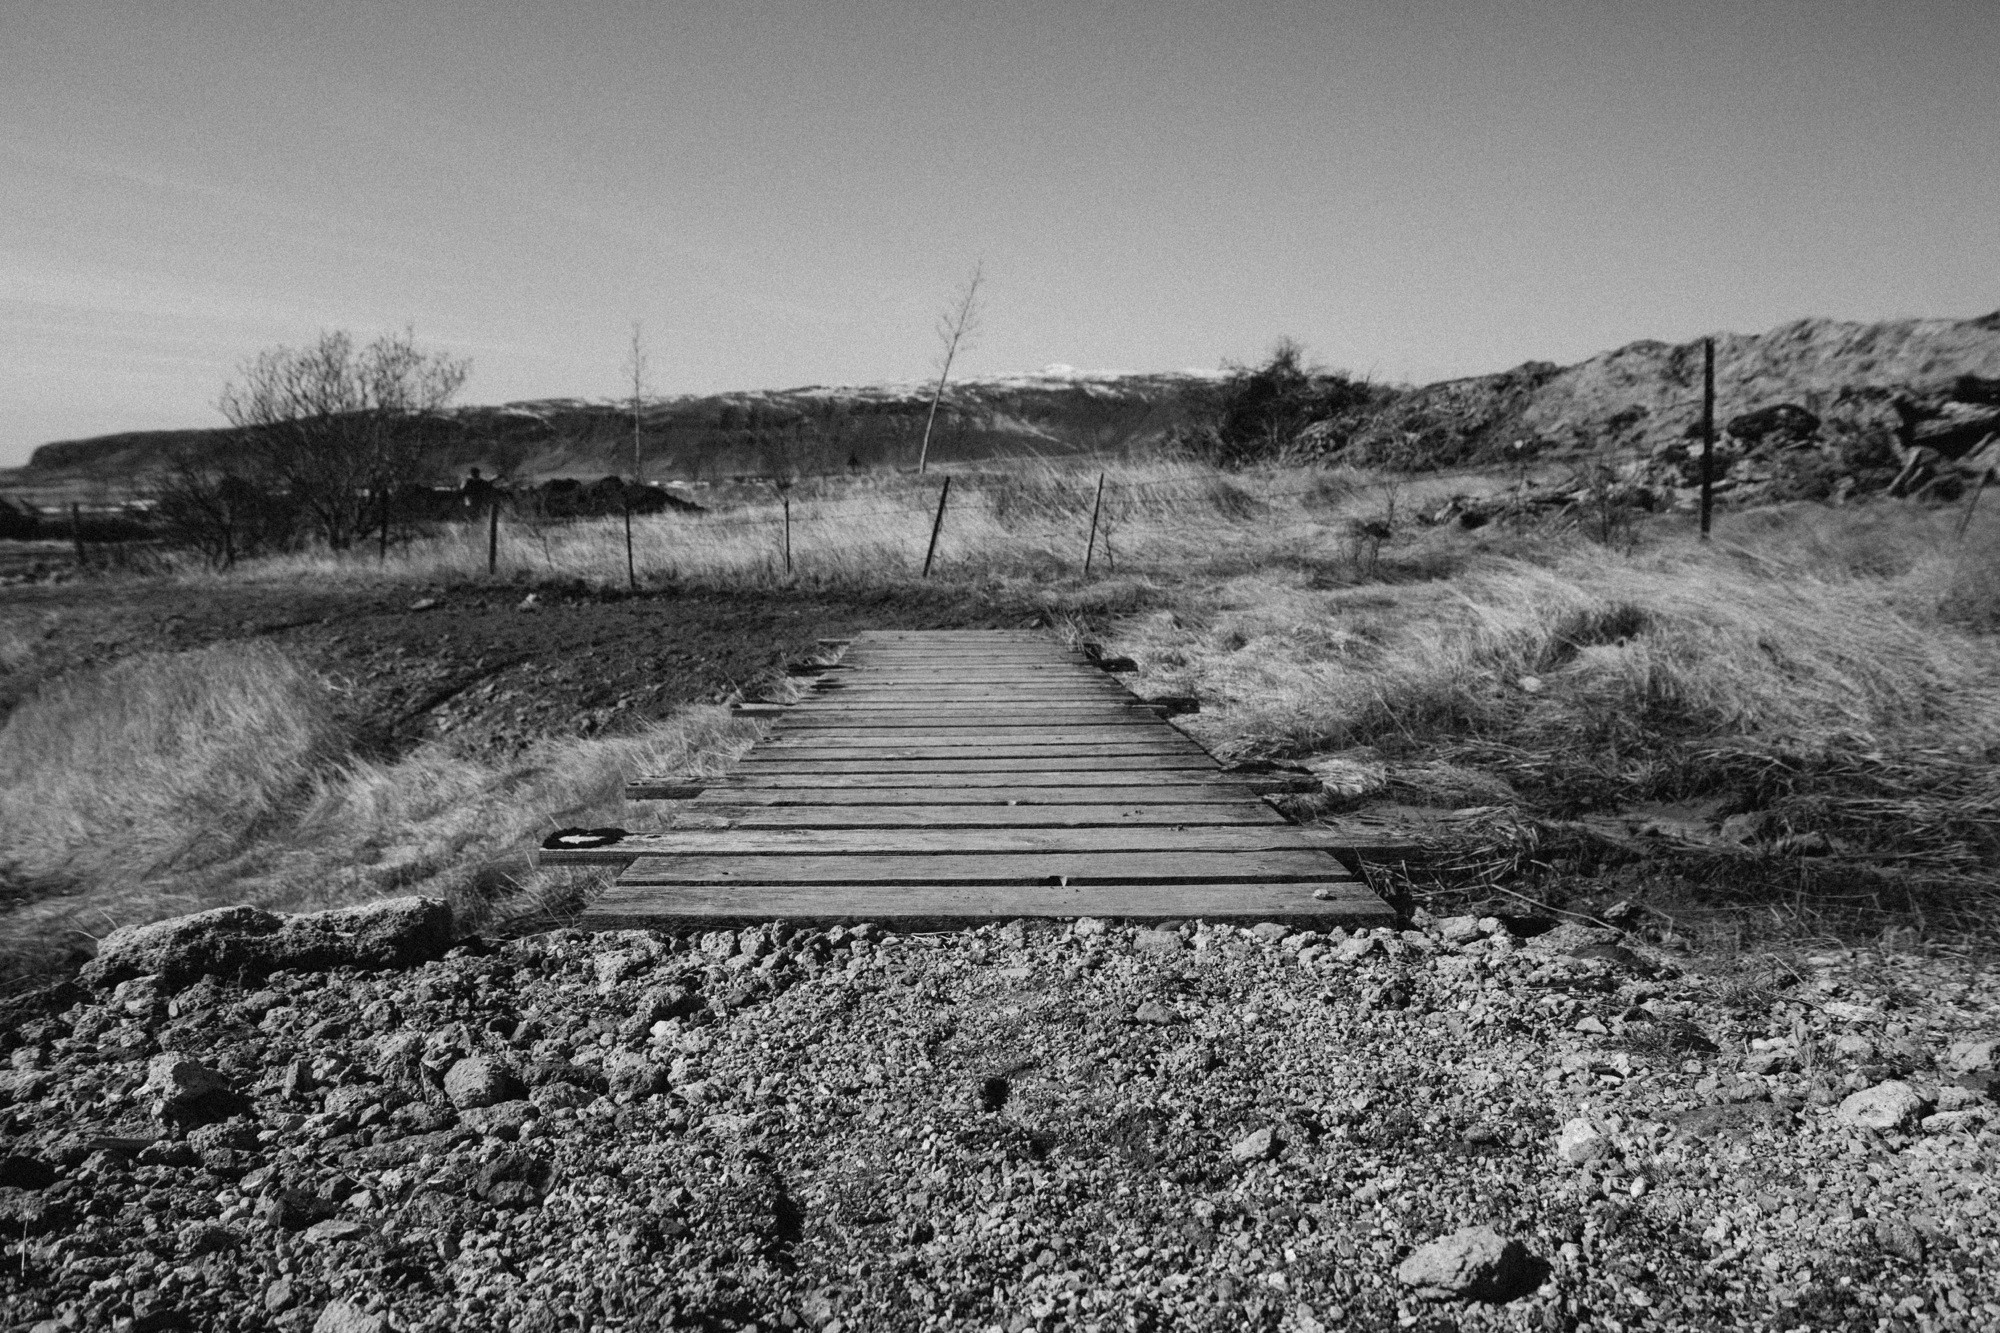 Gravel path leads to worn wooden planks extending into a rocky dry grass landscape without trees